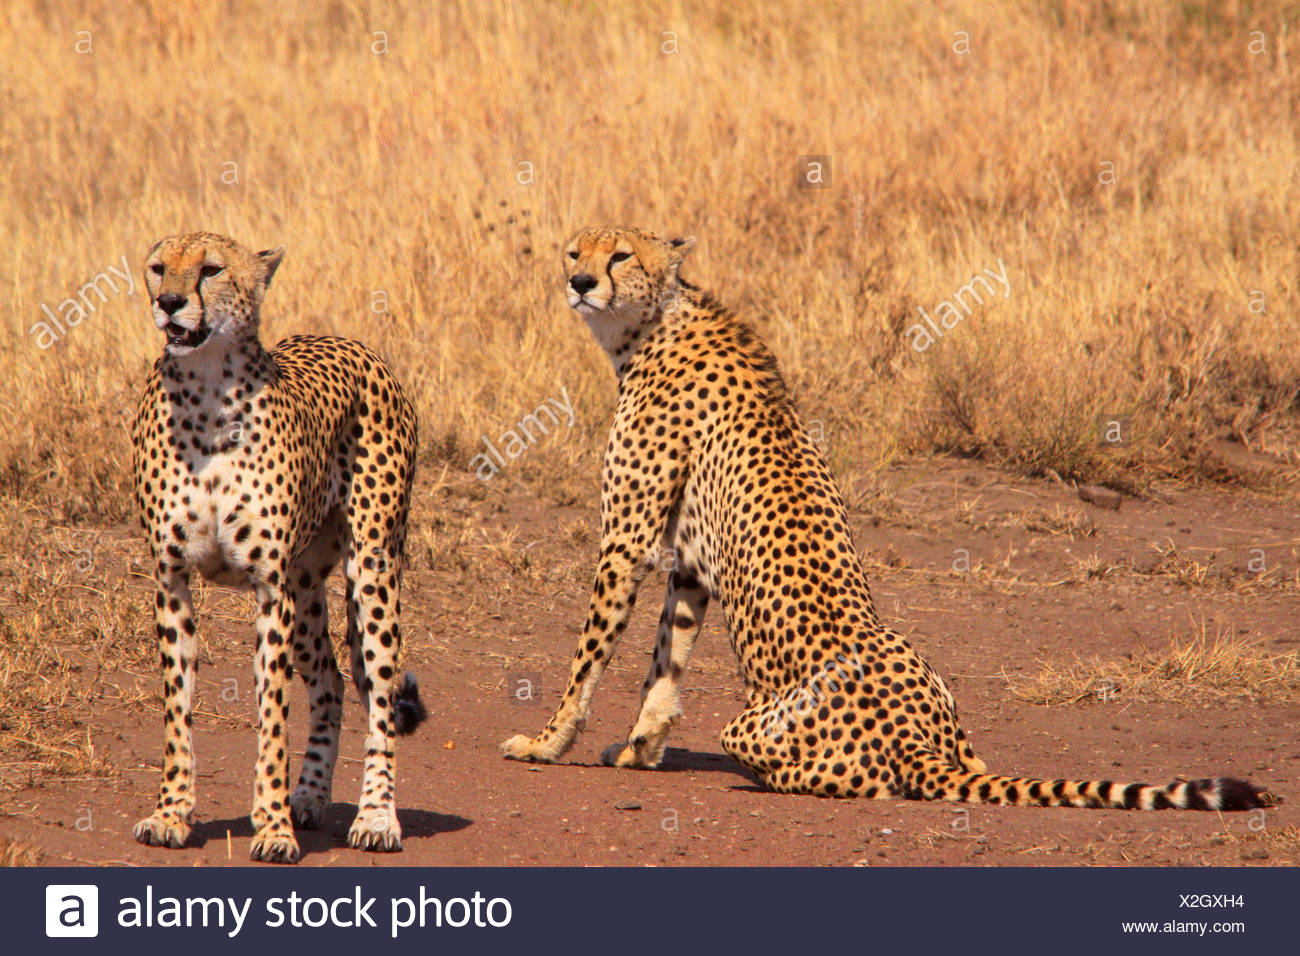 cheetah (Acinonyx jubatus), in the feed, Tanzania, Serengeti National Park - Stock Image